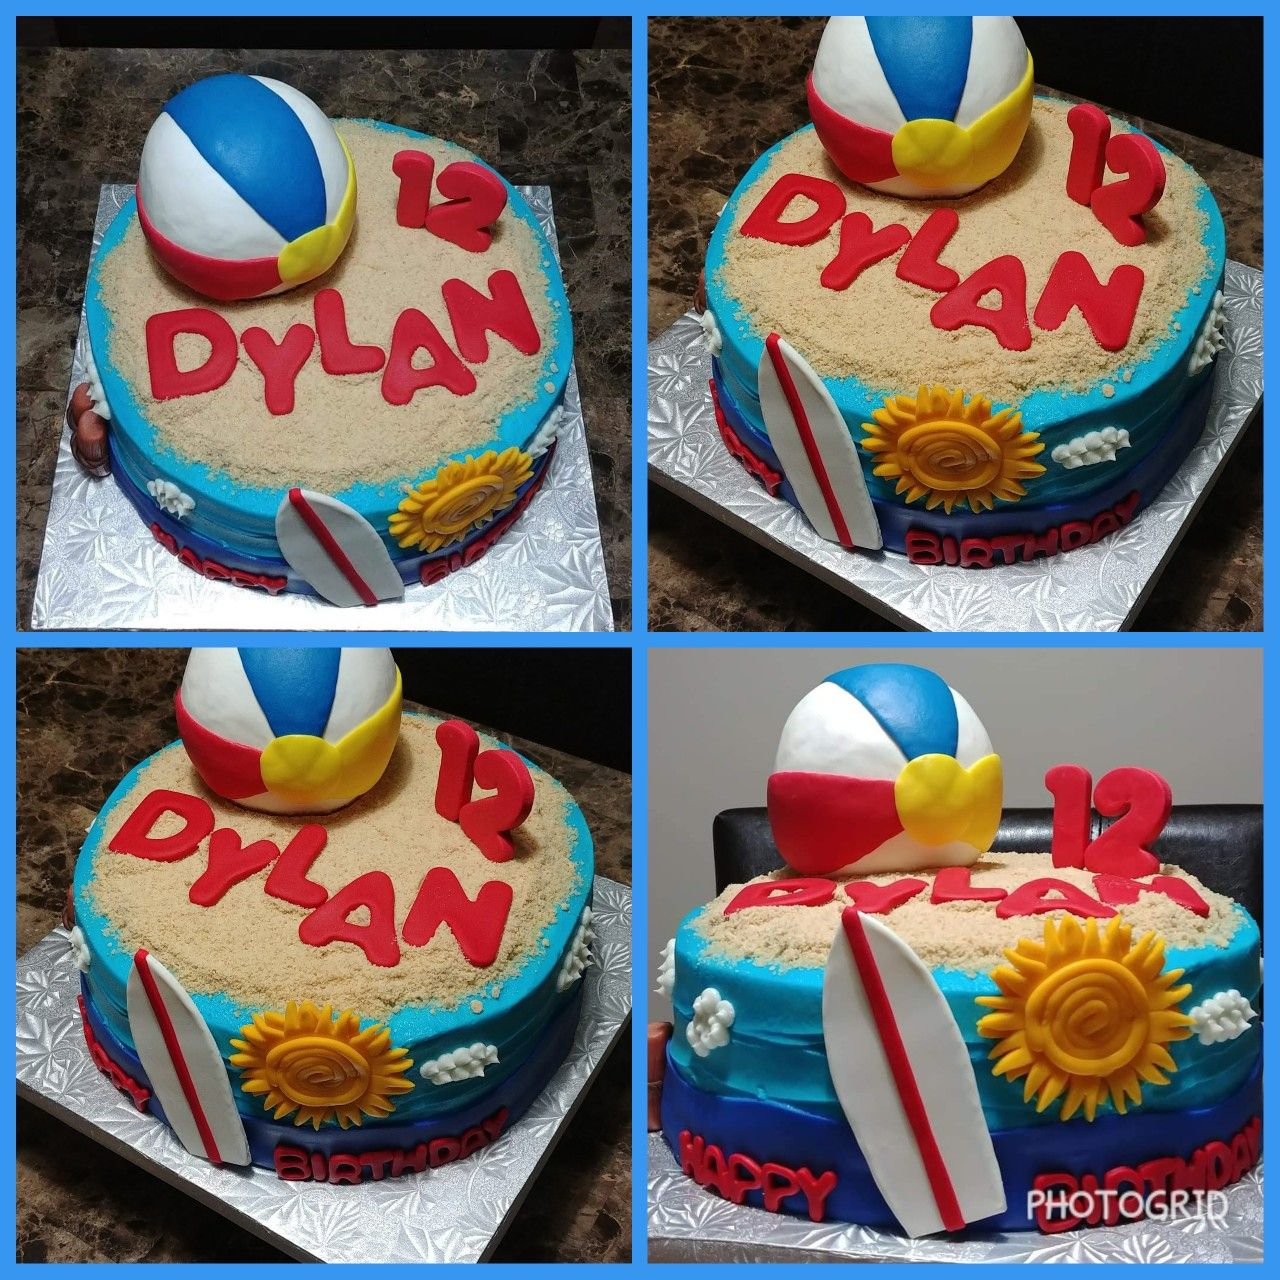 Beach Ball Surfs Up Cake (With images) | Cake